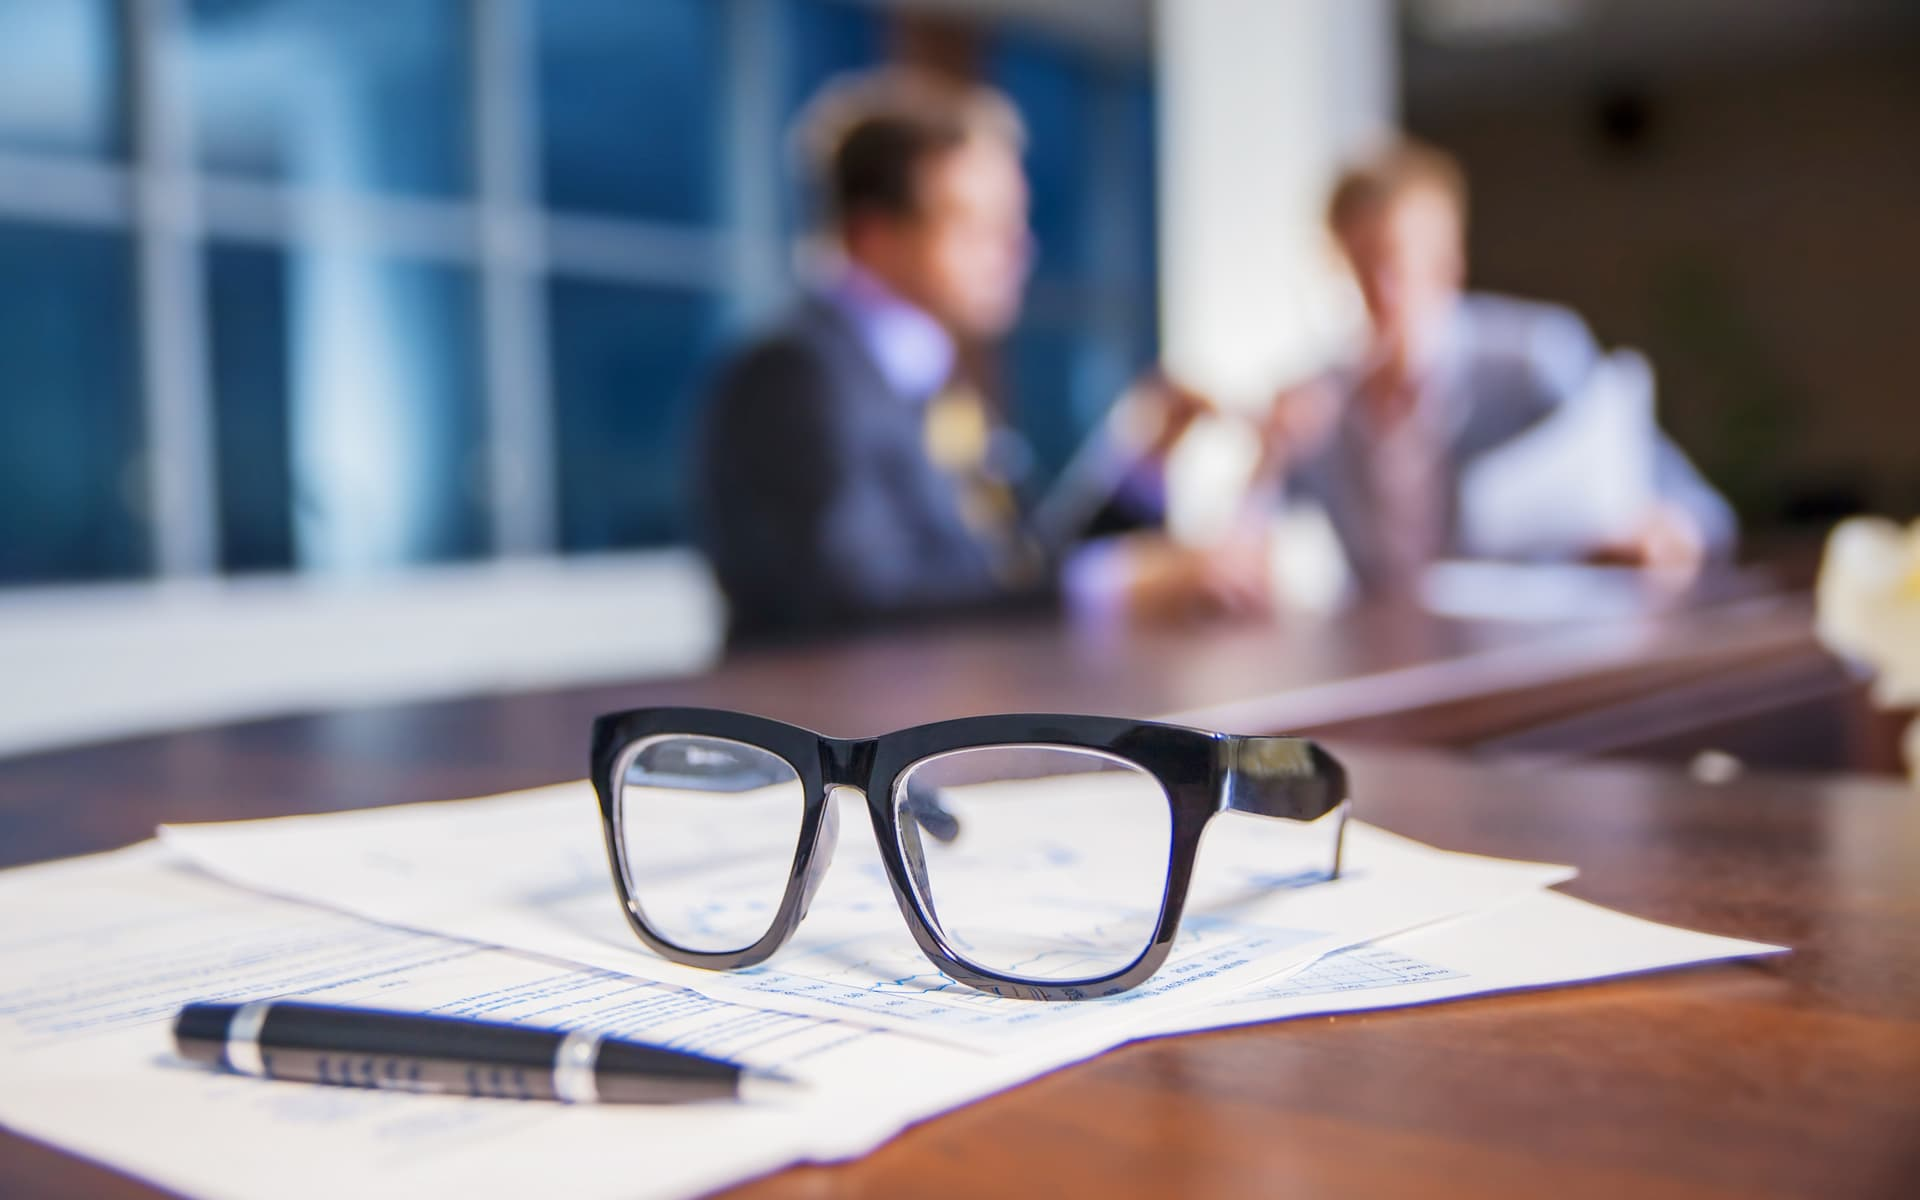 Banking compliance watching thru BPM and BDM glasses - glasses lying on a table